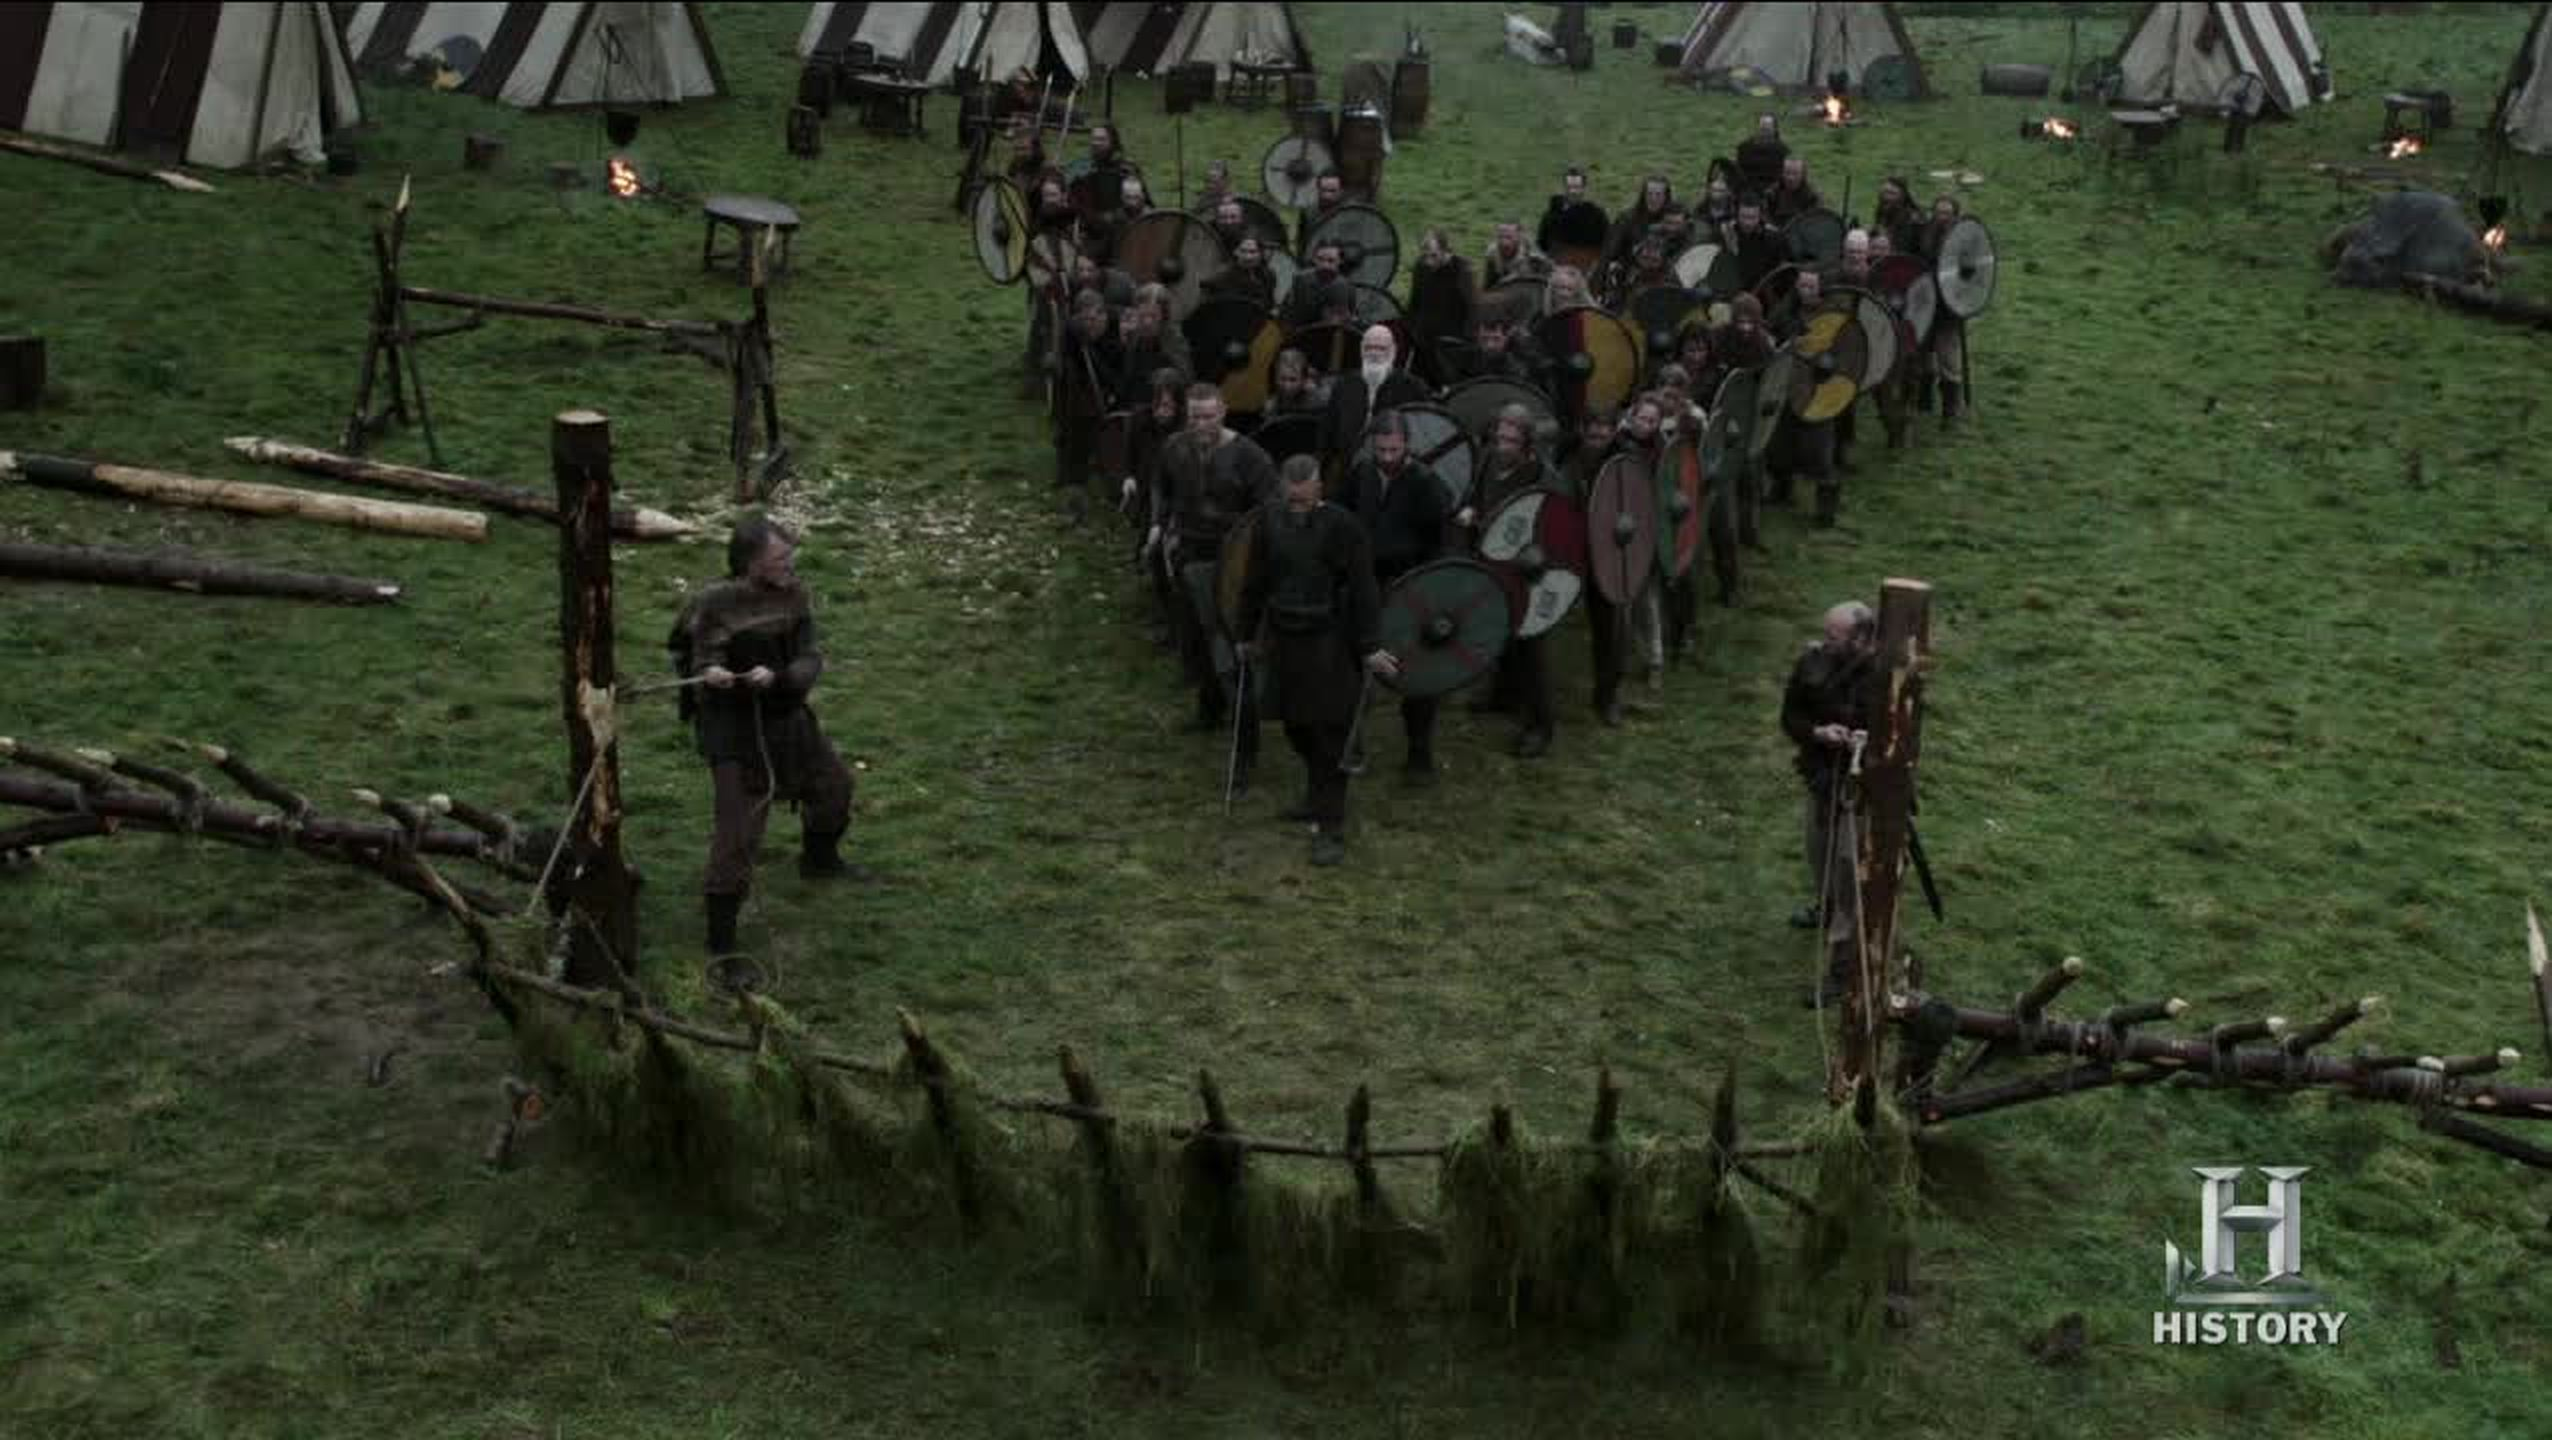 The Viking machine and success in battle.  No barking orders, nothing like that.  They just react, form up and fight as one.